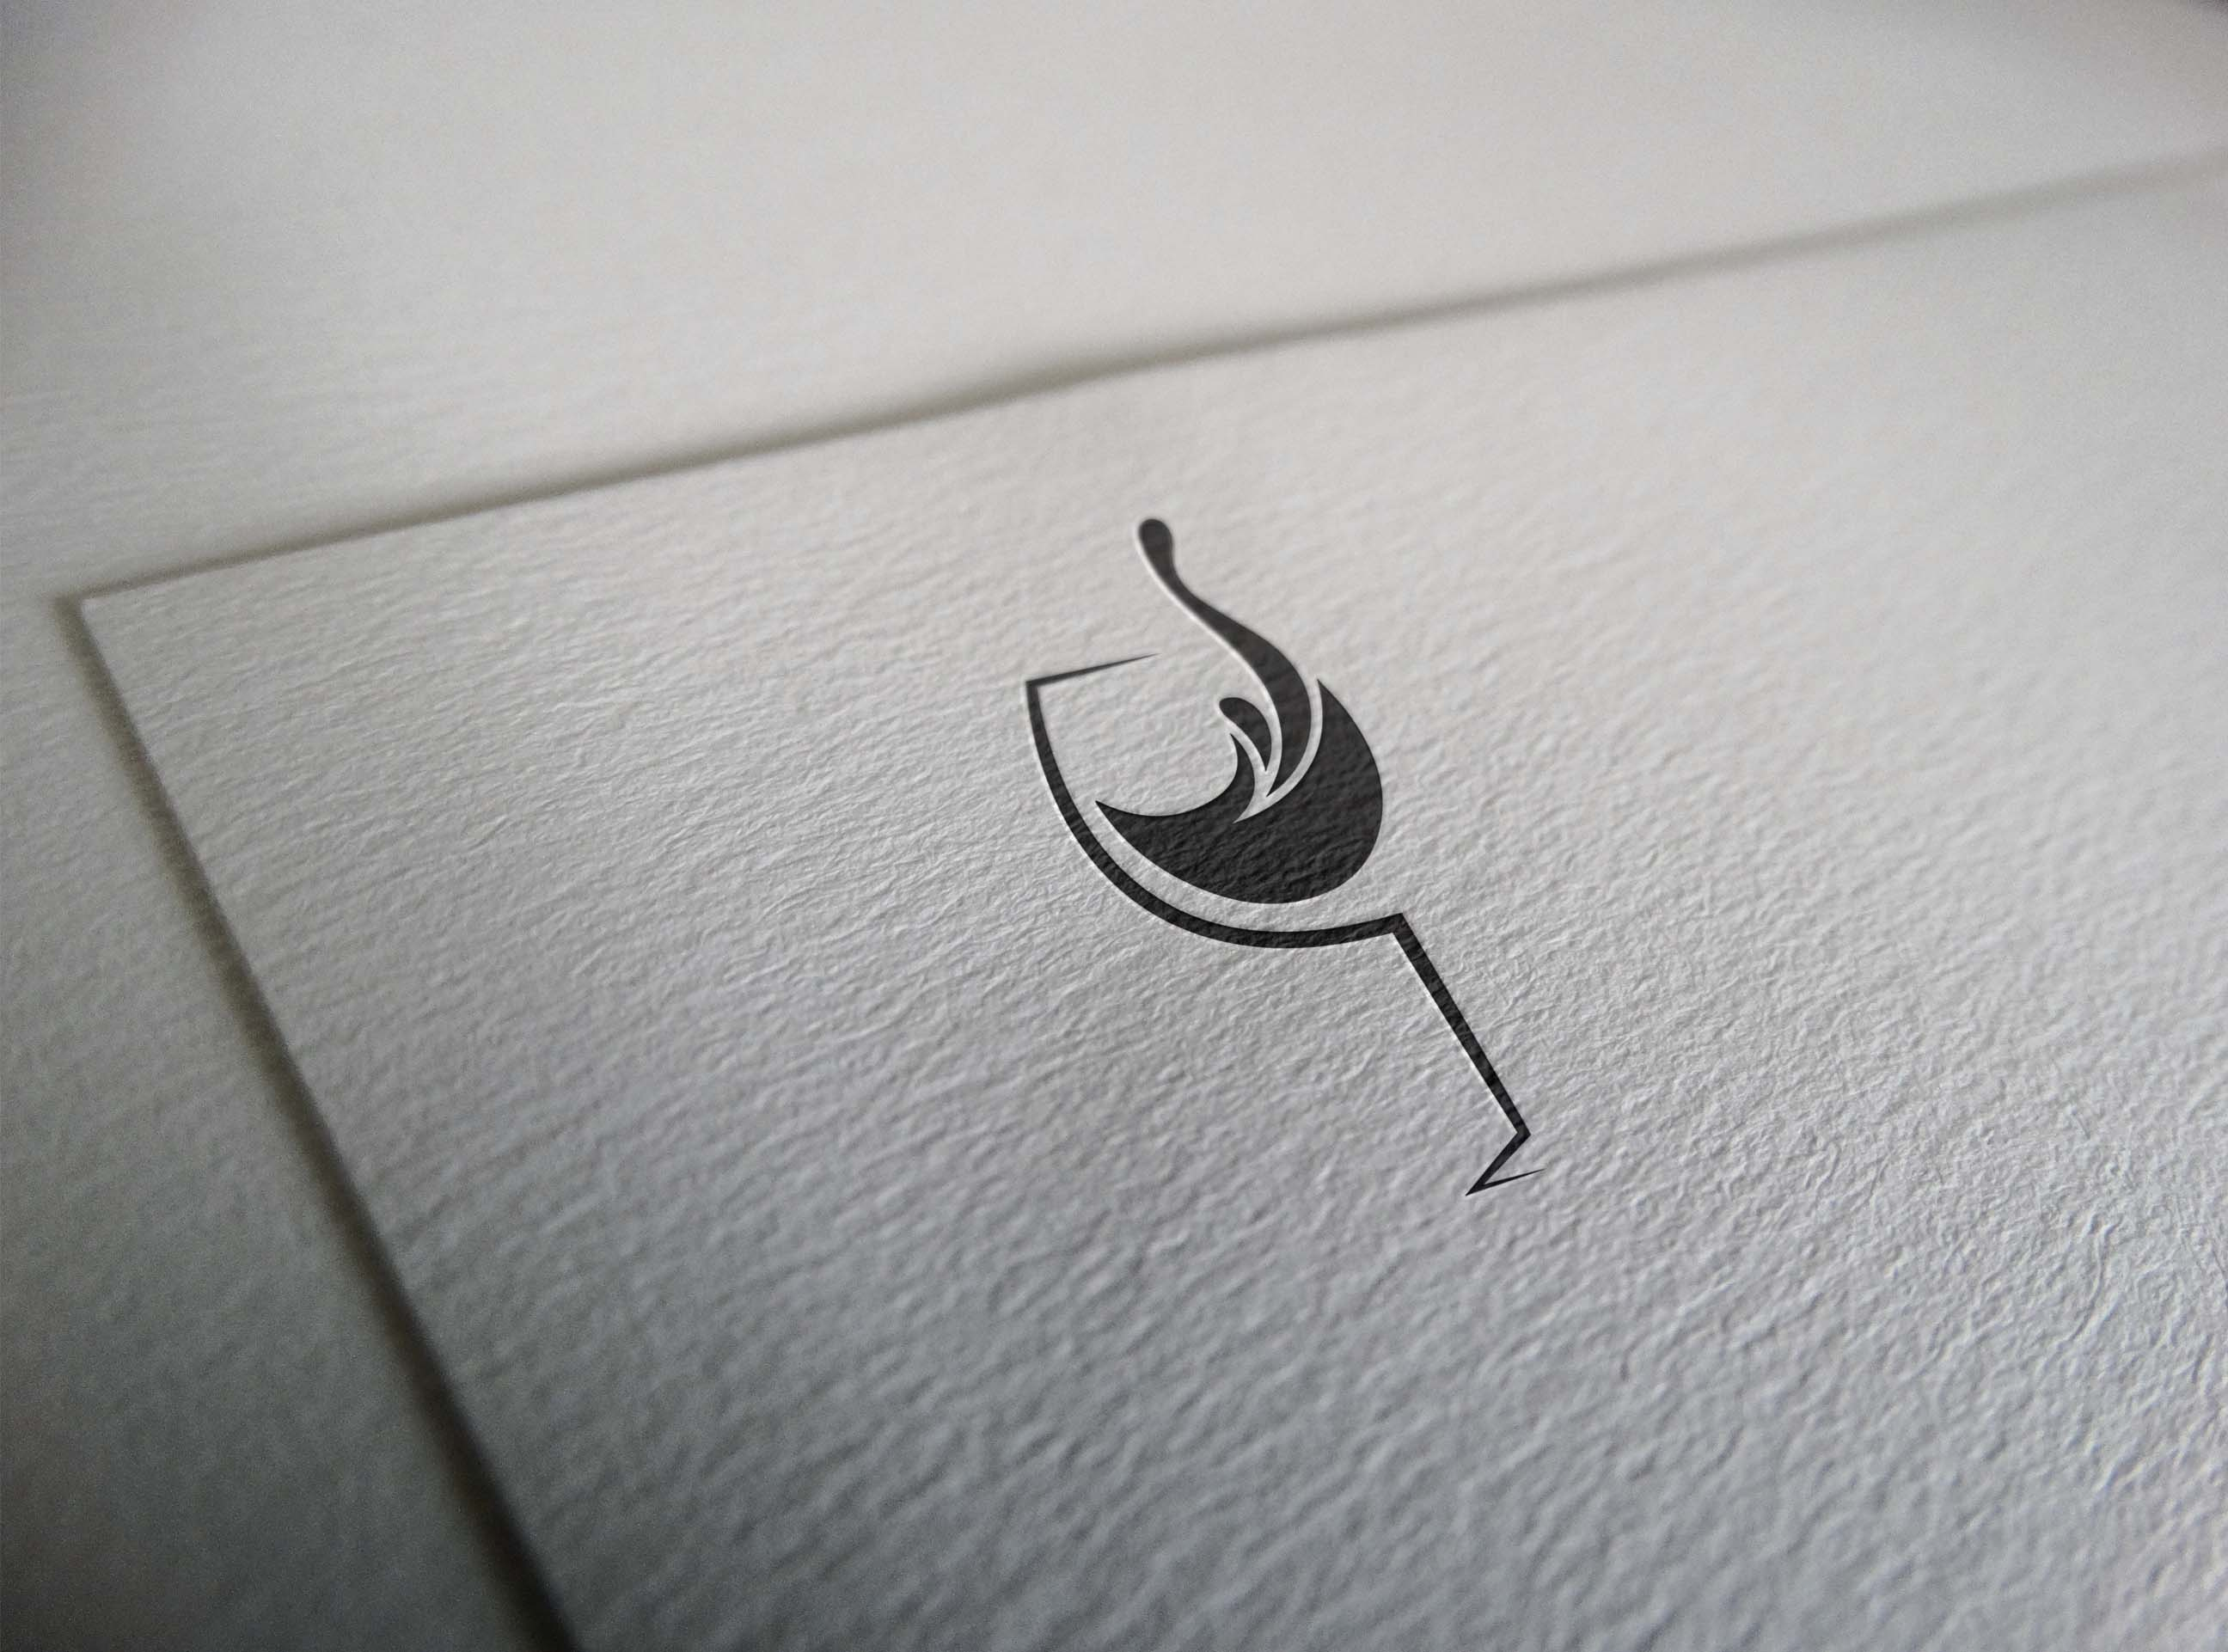 I Will do professional logo design withing 24 hours